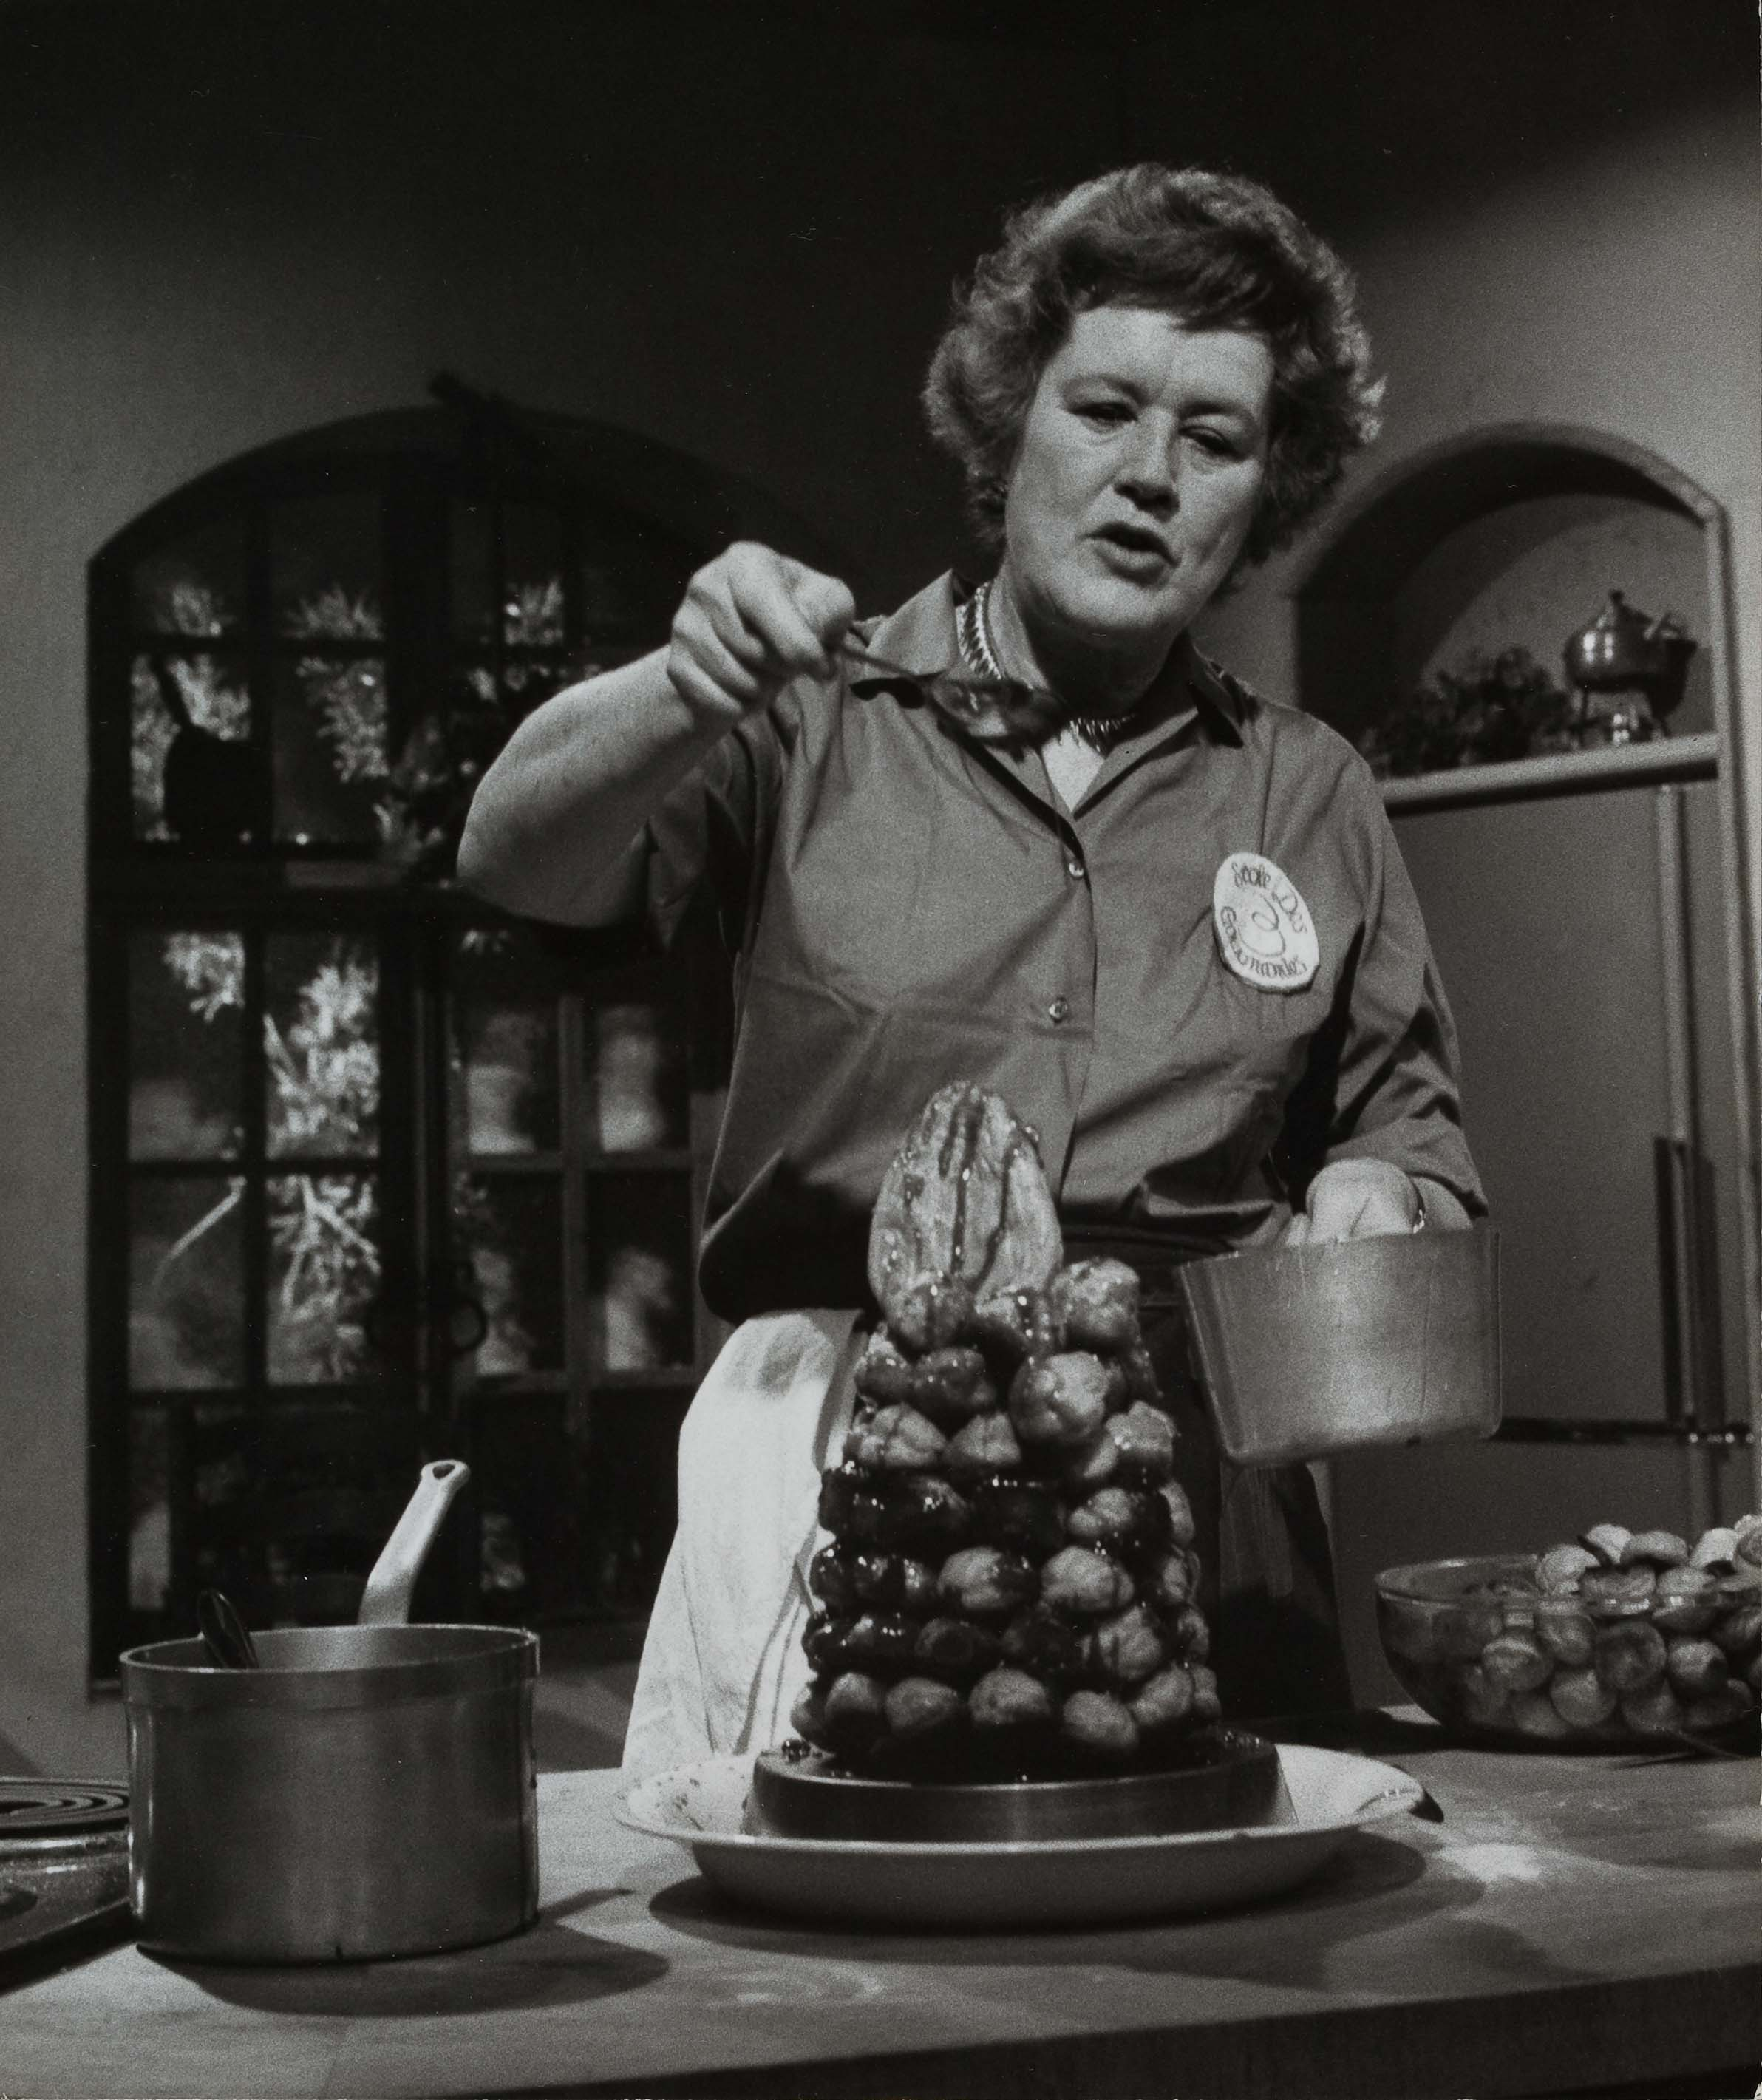 The French Chef episode #66, New Year's - Croquembouche. Photo by Paul Child, 1965.